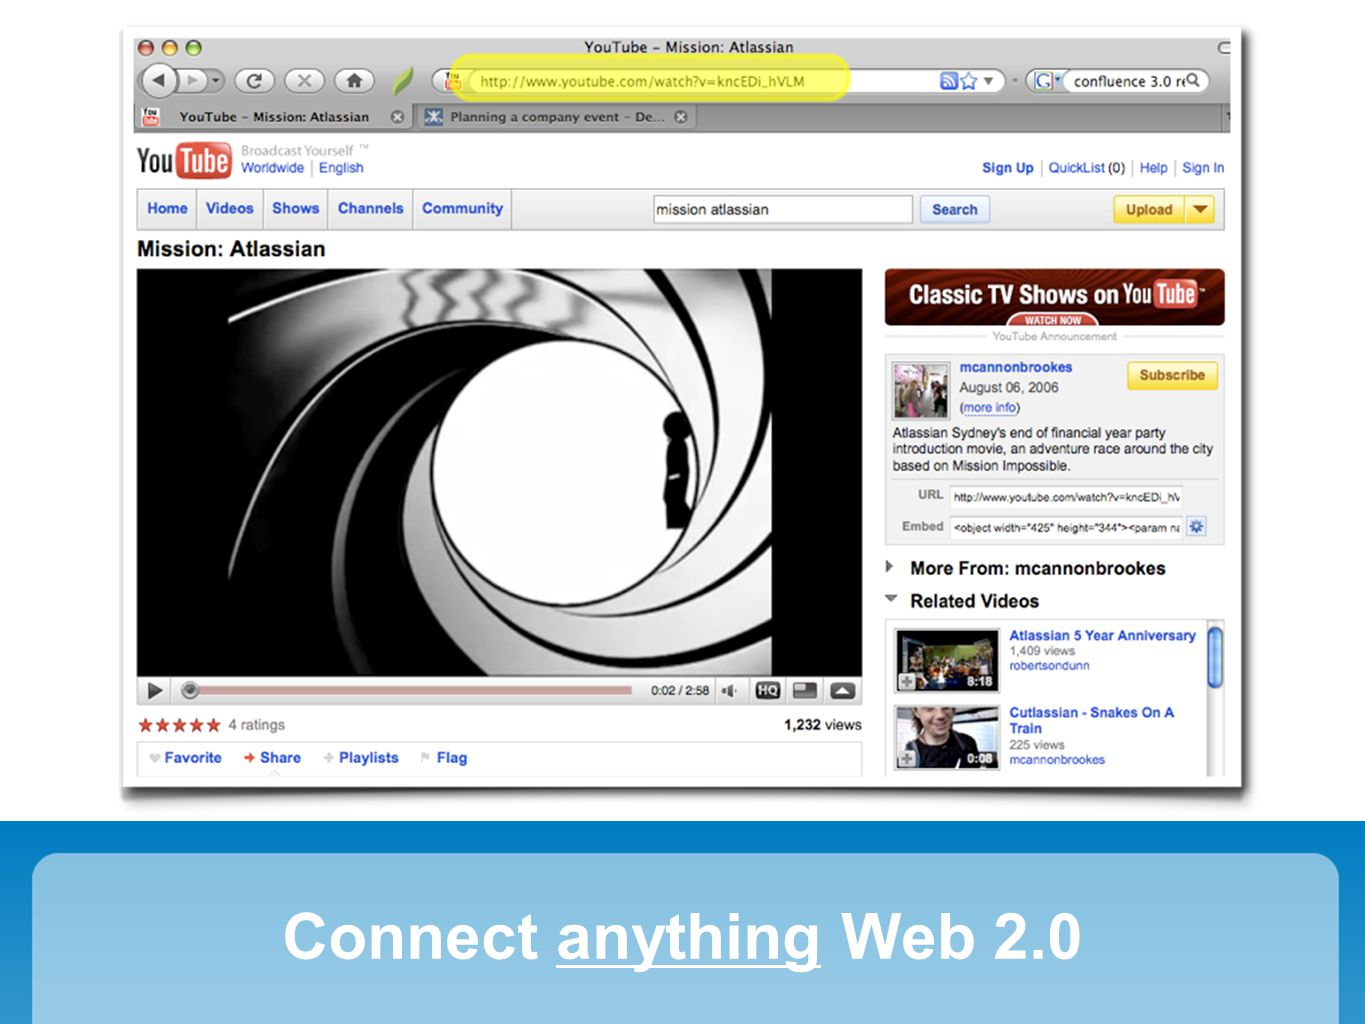 2008: Widget Connector Connect anything Web 2.0